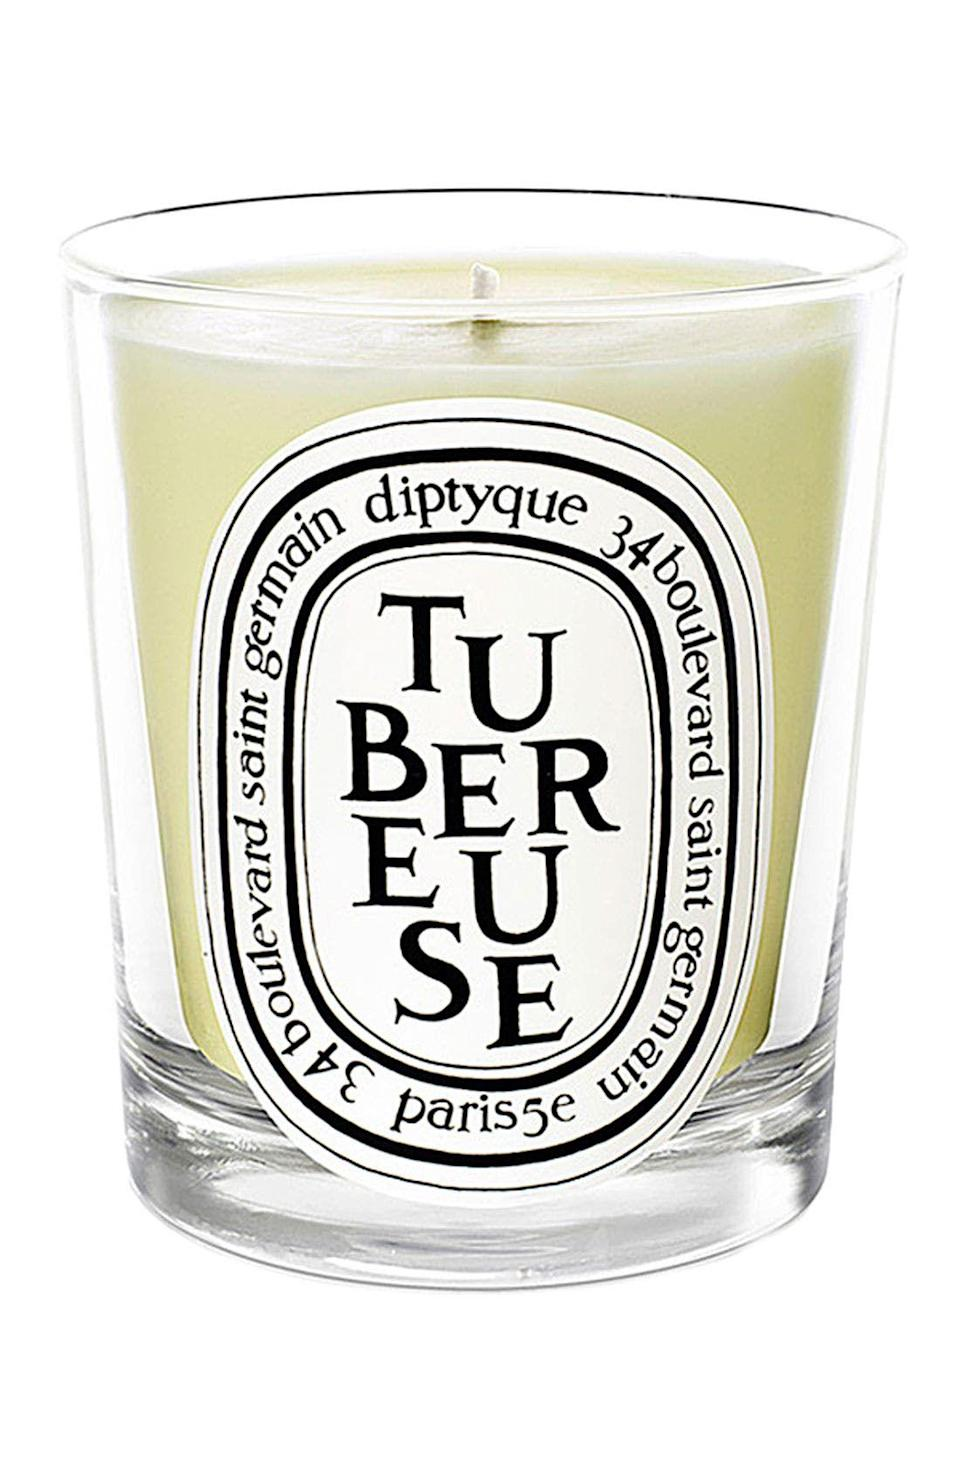 "<p><strong>Diptyque</strong></p><p>nordstrom.com</p><p><strong>$38.00</strong></p><p><a href=""https://go.redirectingat.com?id=74968X1596630&url=https%3A%2F%2Fwww.nordstrom.com%2Fs%2Fdiptyque-tubereuse-tuberose-candle%2F3228170&sref=https%3A%2F%2Fwww.oprahdaily.com%2Flife%2Fg36055948%2Fsummer-candles%2F"" rel=""nofollow noopener"" target=""_blank"" data-ylk=""slk:SHOP NOW"" class=""link rapid-noclick-resp"">SHOP NOW</a></p><p>Diptyque is know for its luxe candles and sophisticated fragrances, like the exotic notes of the night-blooming tuberose plant. <em>C'est chic, non?</em> </p>"